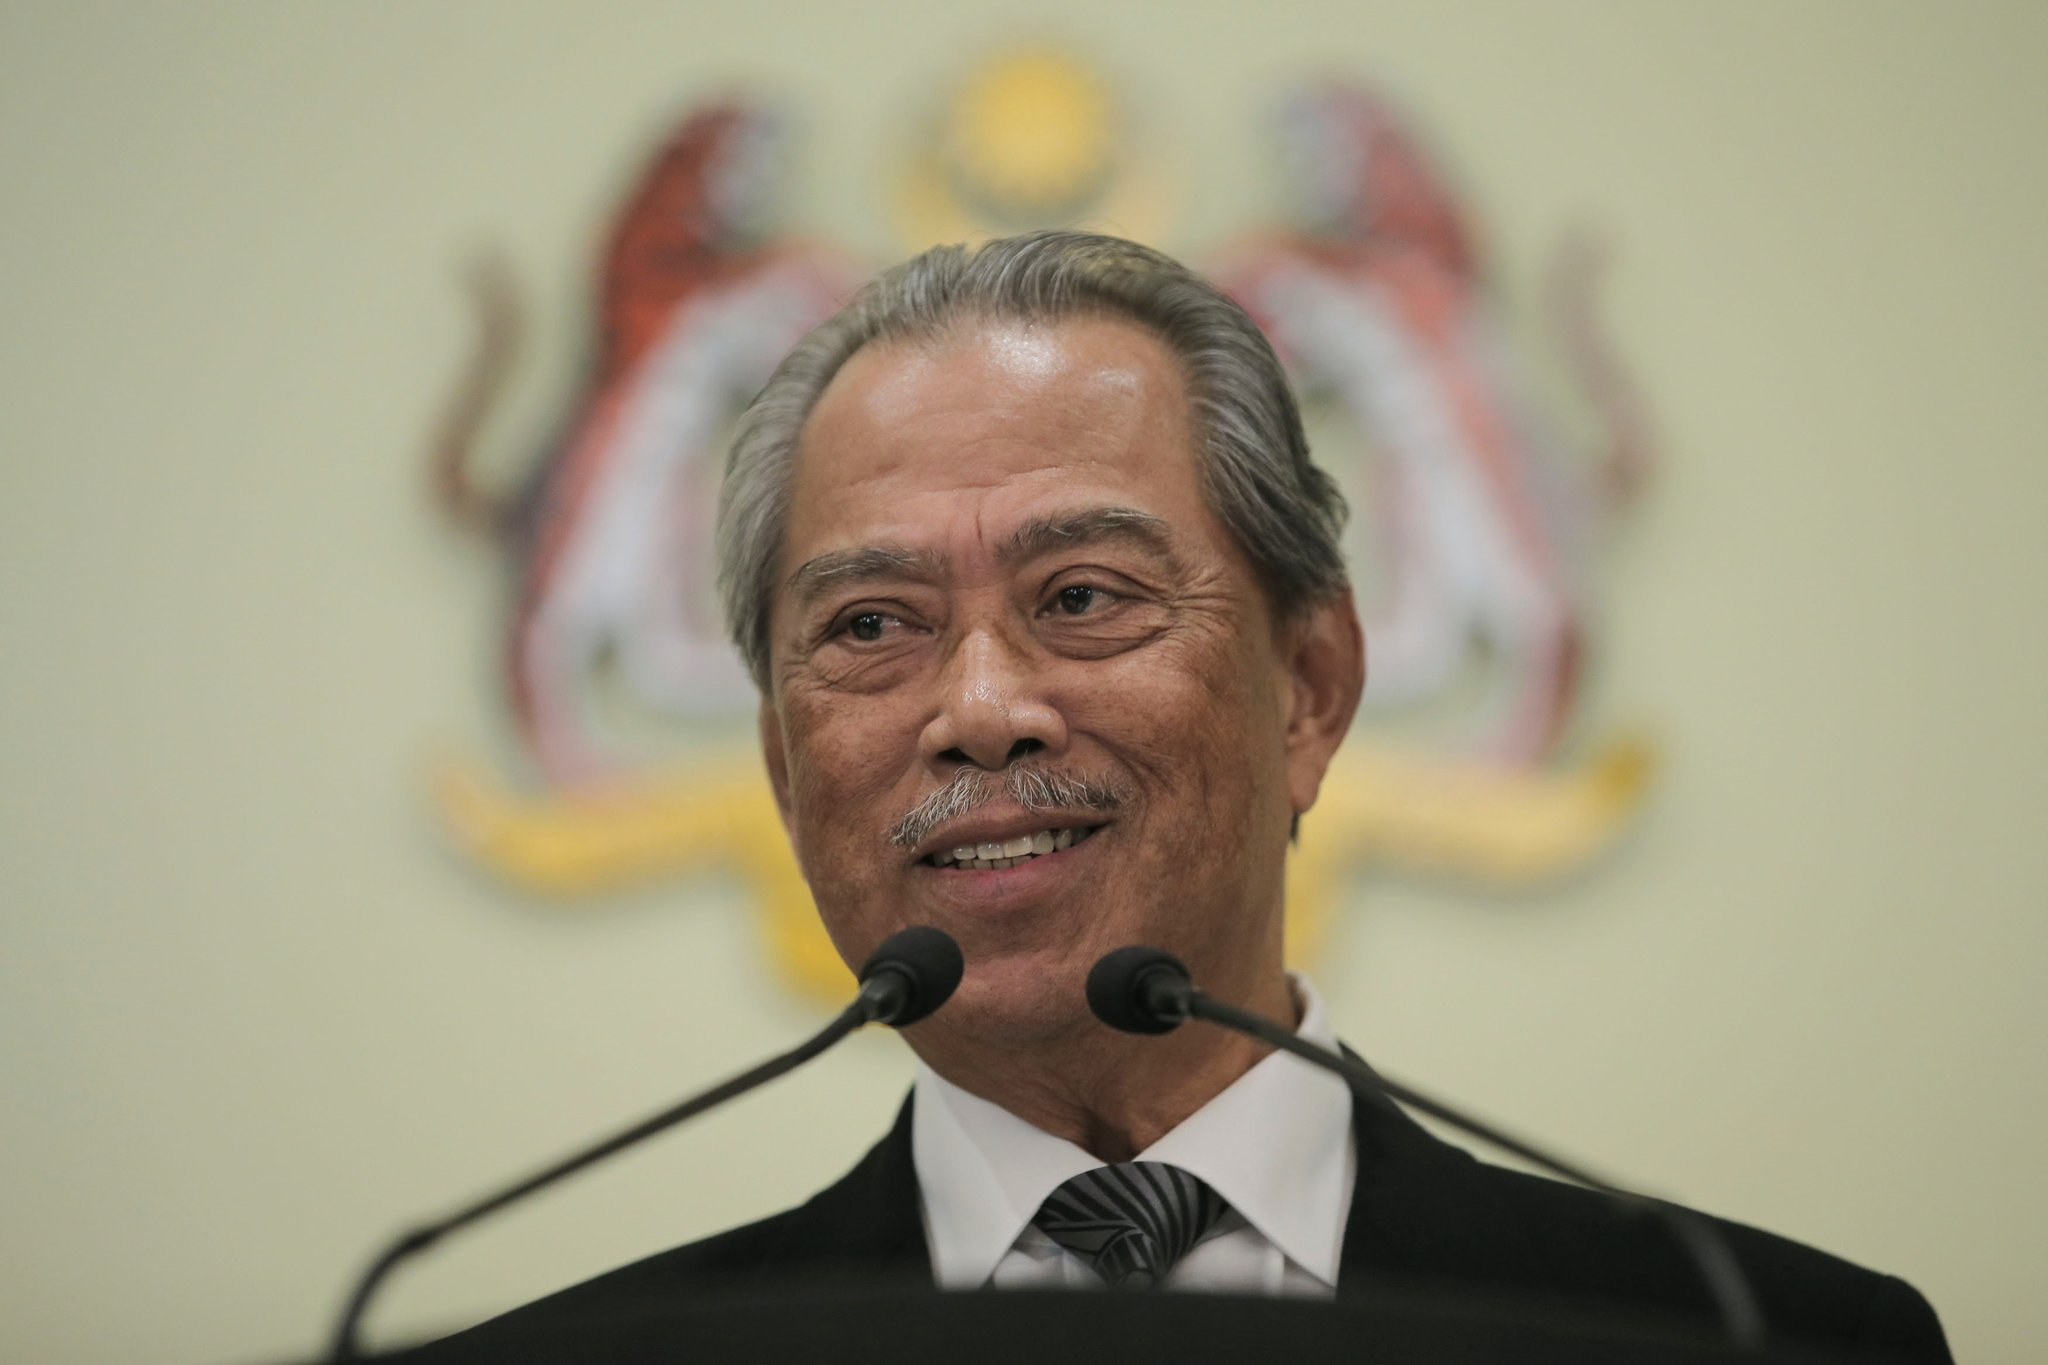 Muhyiddin Yassin says he will remain as PM and will test his majority in the Dewan Rakyat during the September sitting.  He adds that the Yang di-Pertuan Agong has accepted this decision. https://t.co/ZZI69MSnOI